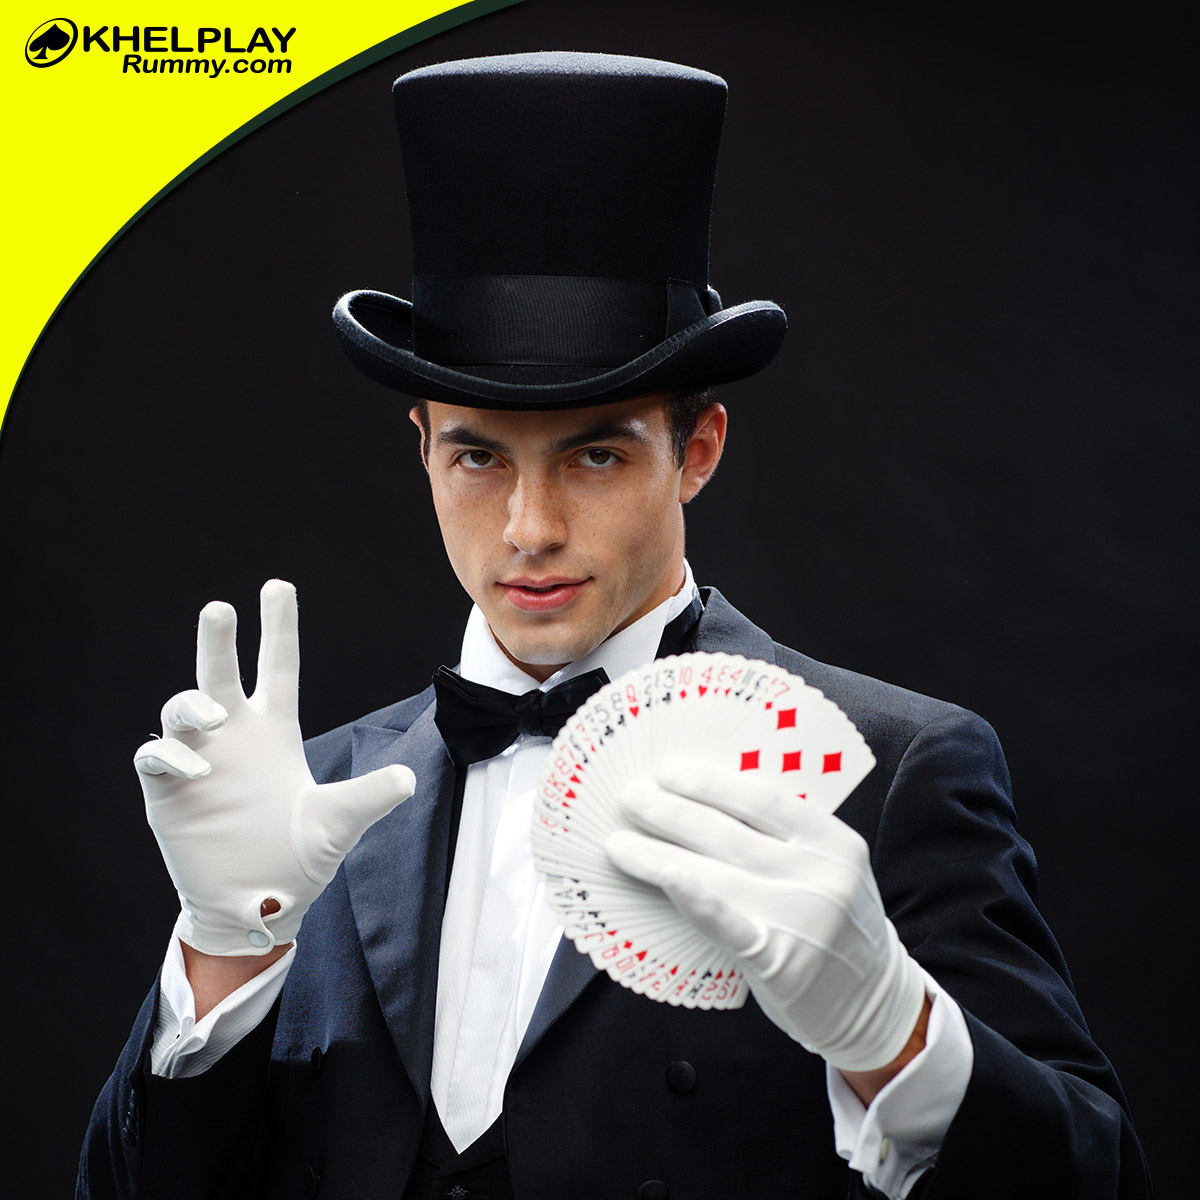 Is Online Rummy Only for Skilled Players?